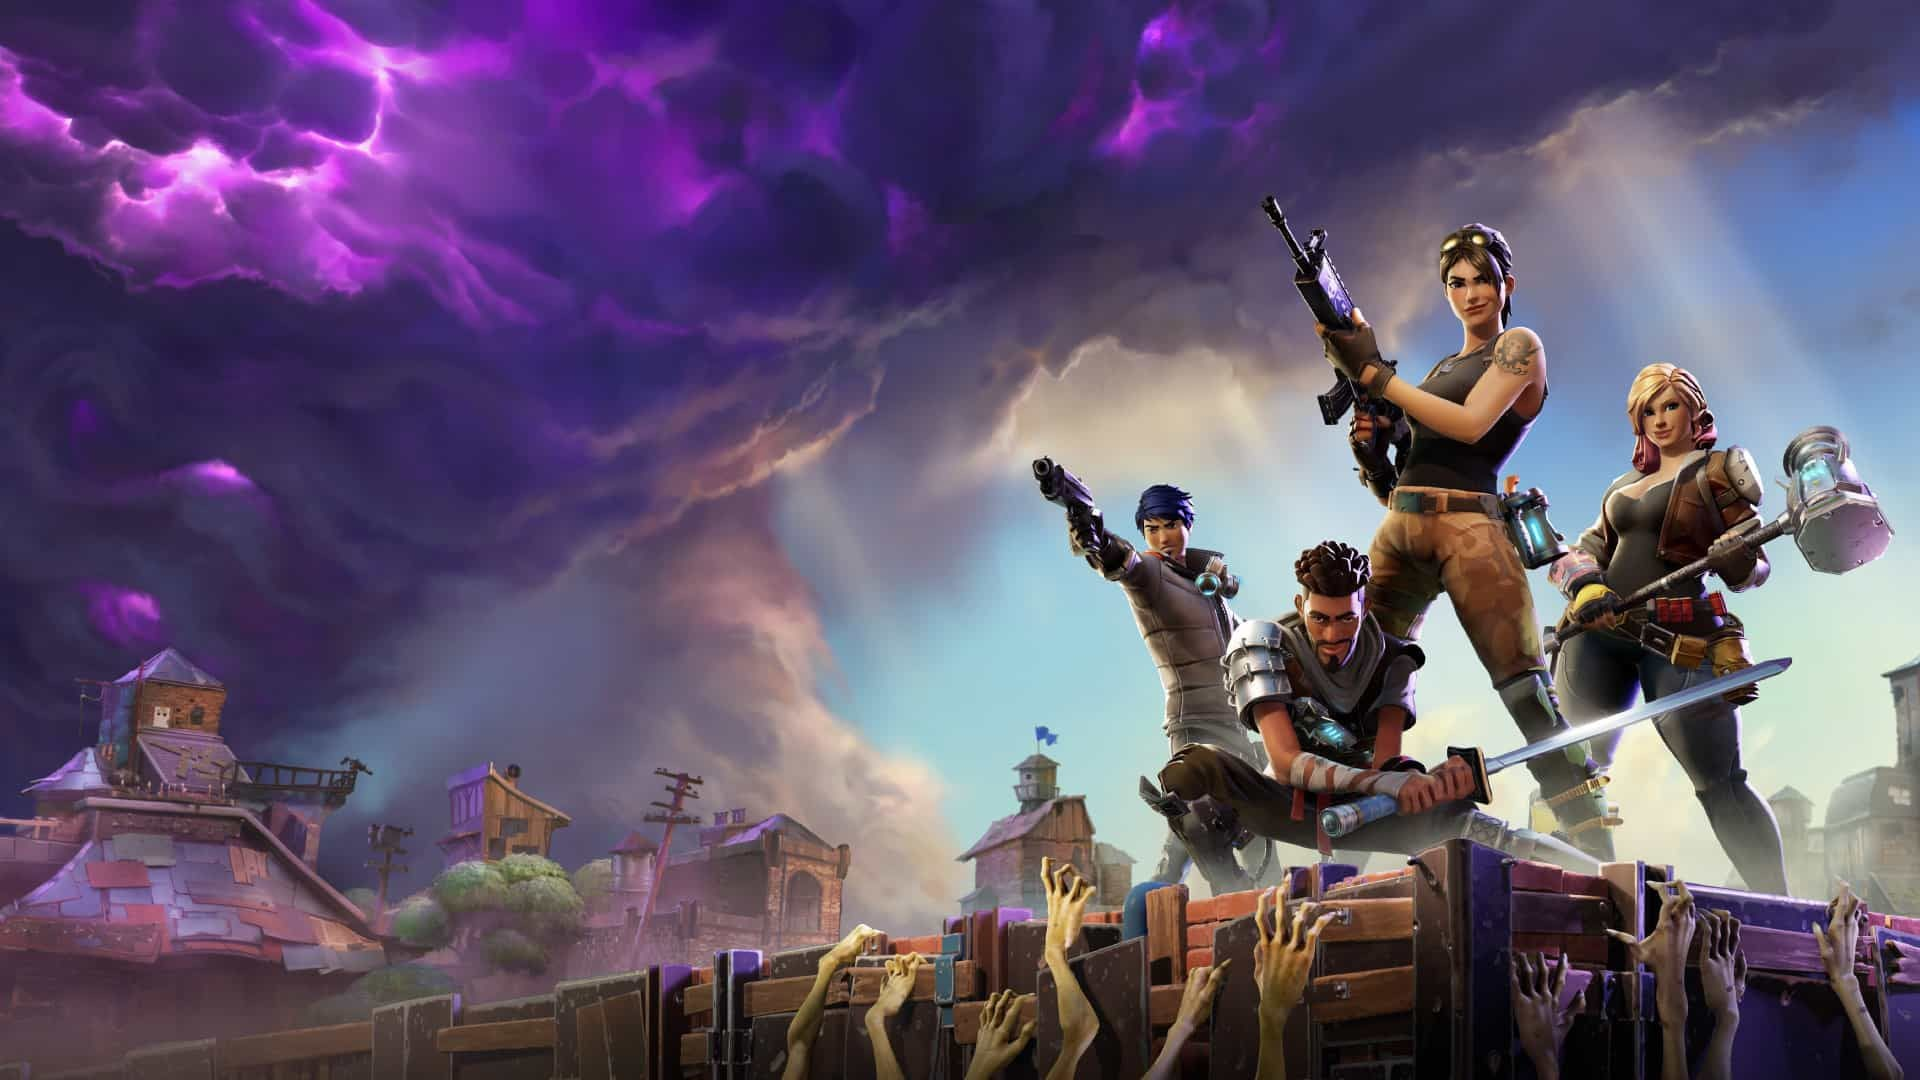 Fortnite Zombie Attack HD Wallpaper